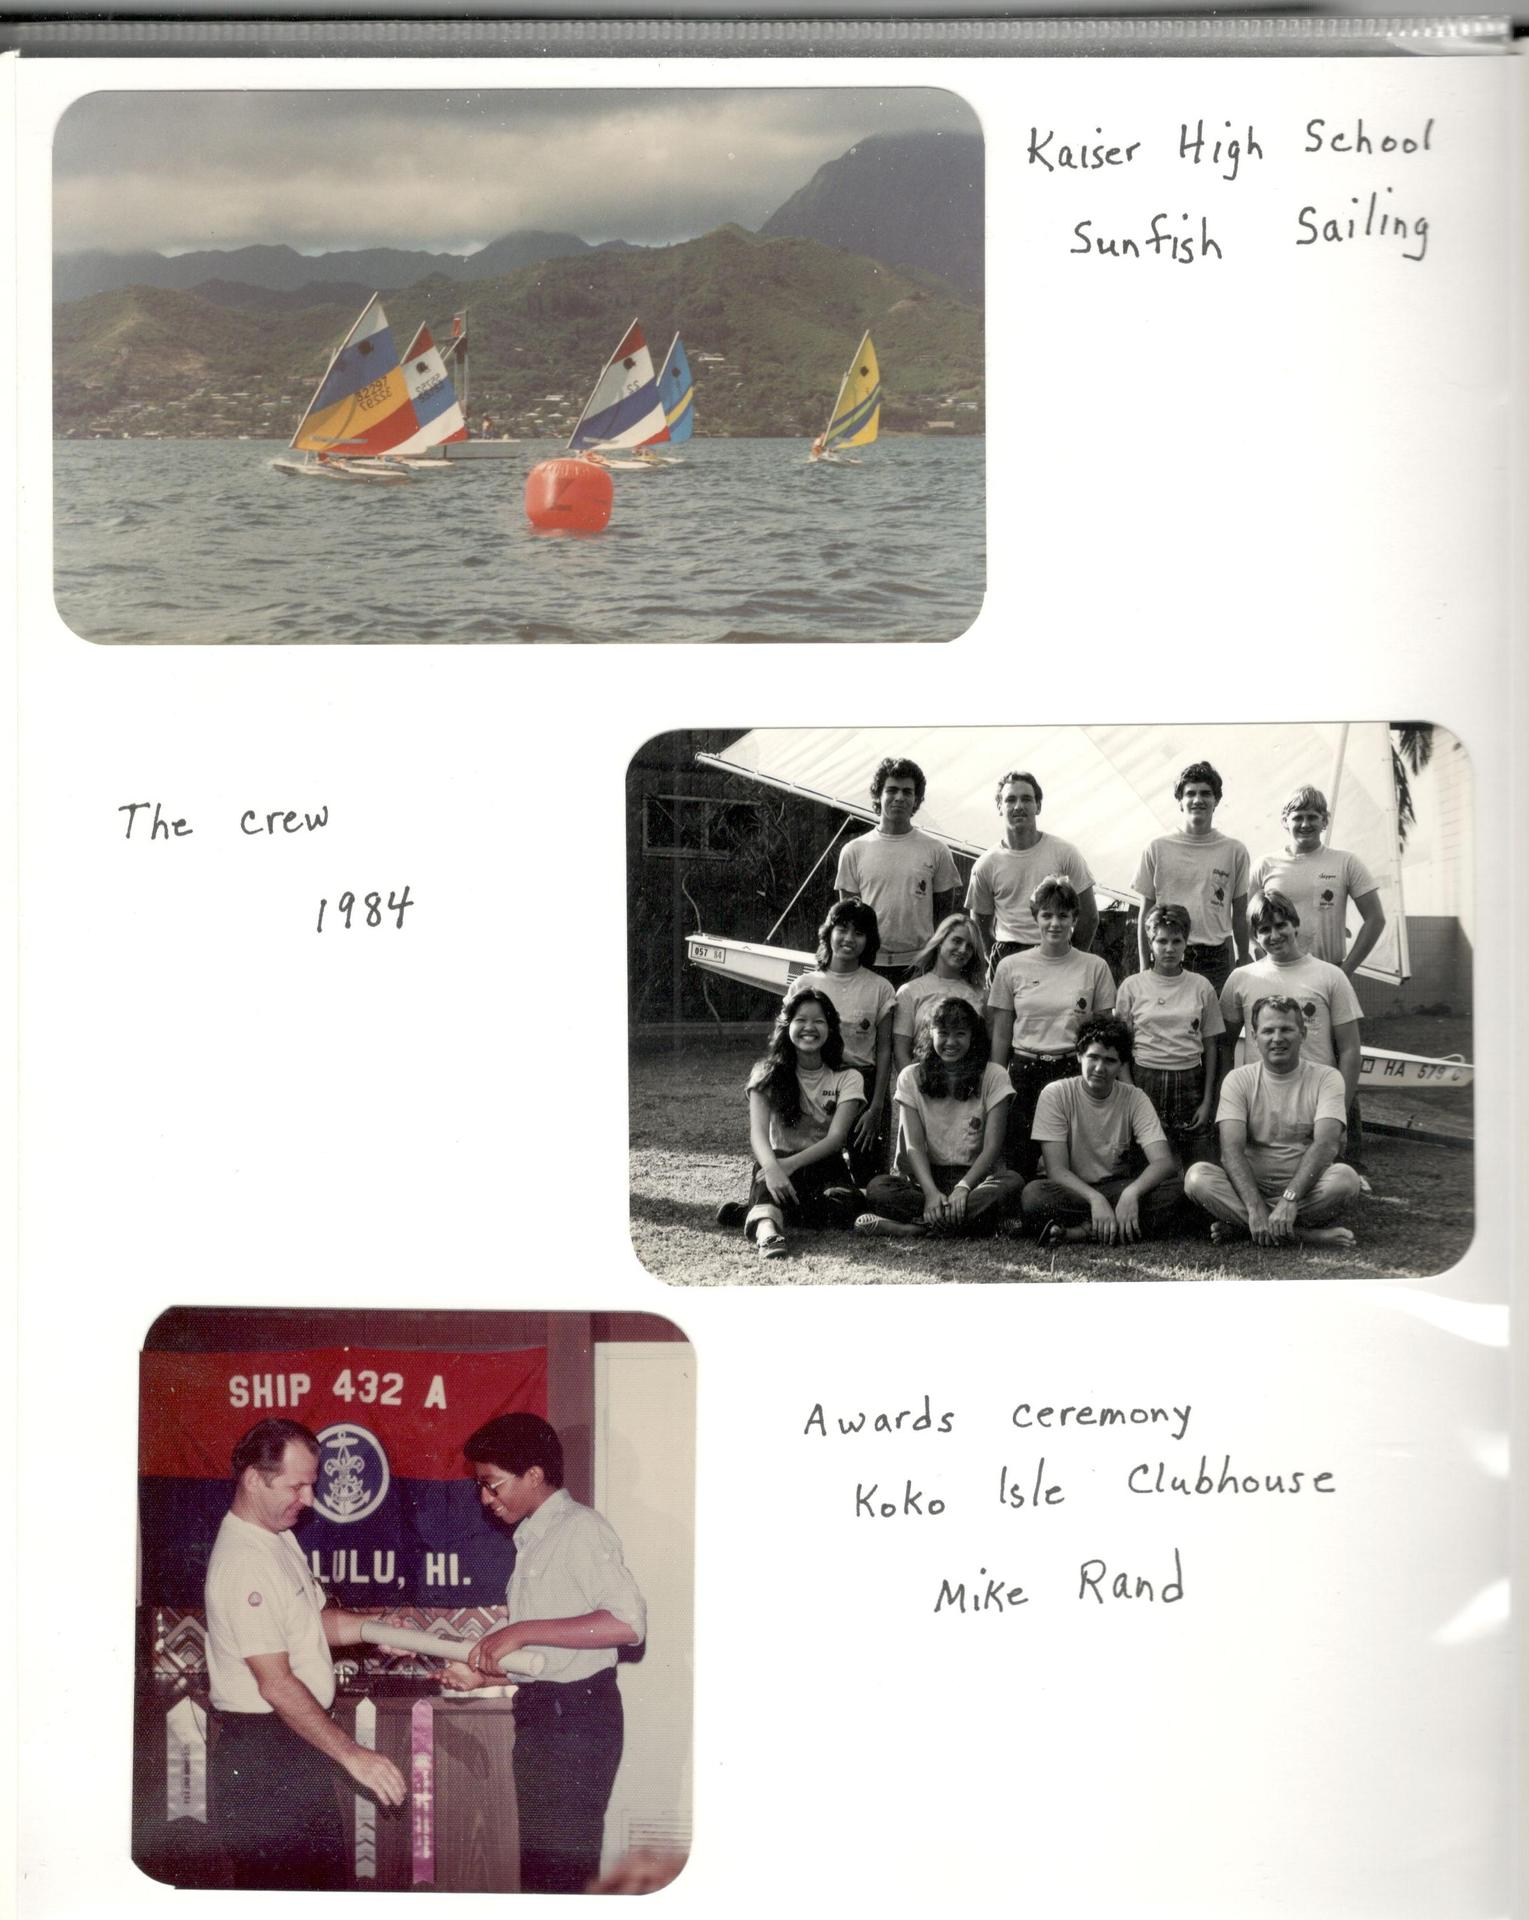 Kaiser Sail Team photos from 1984